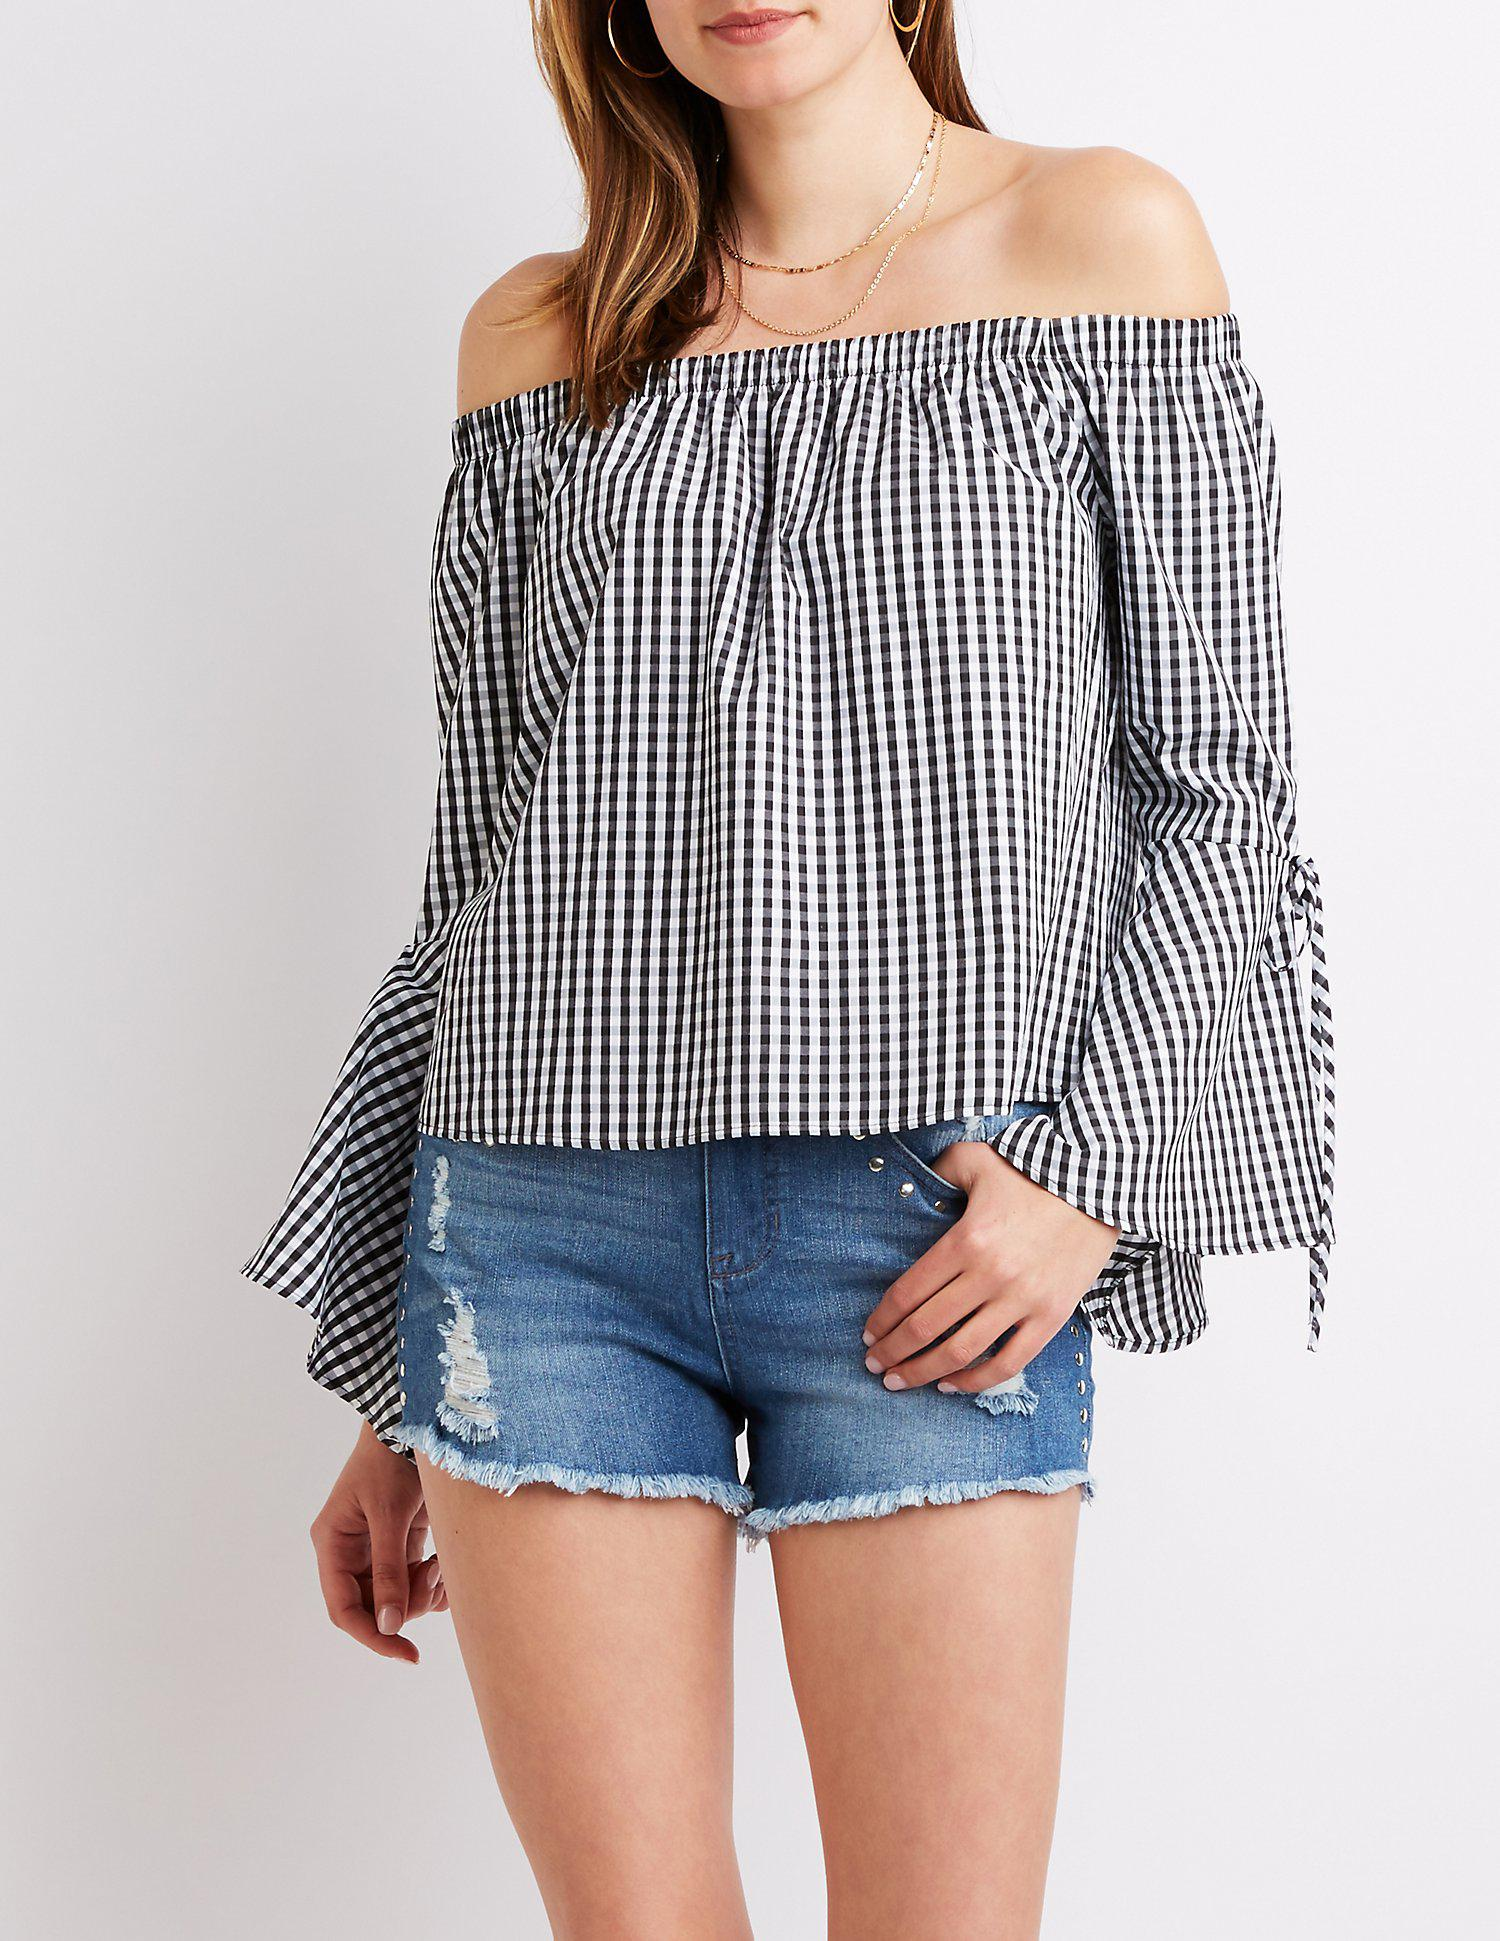 a8a7877e9d7 Lyst - Charlotte Russe Gingham Off-the-shoulder Top in Blue